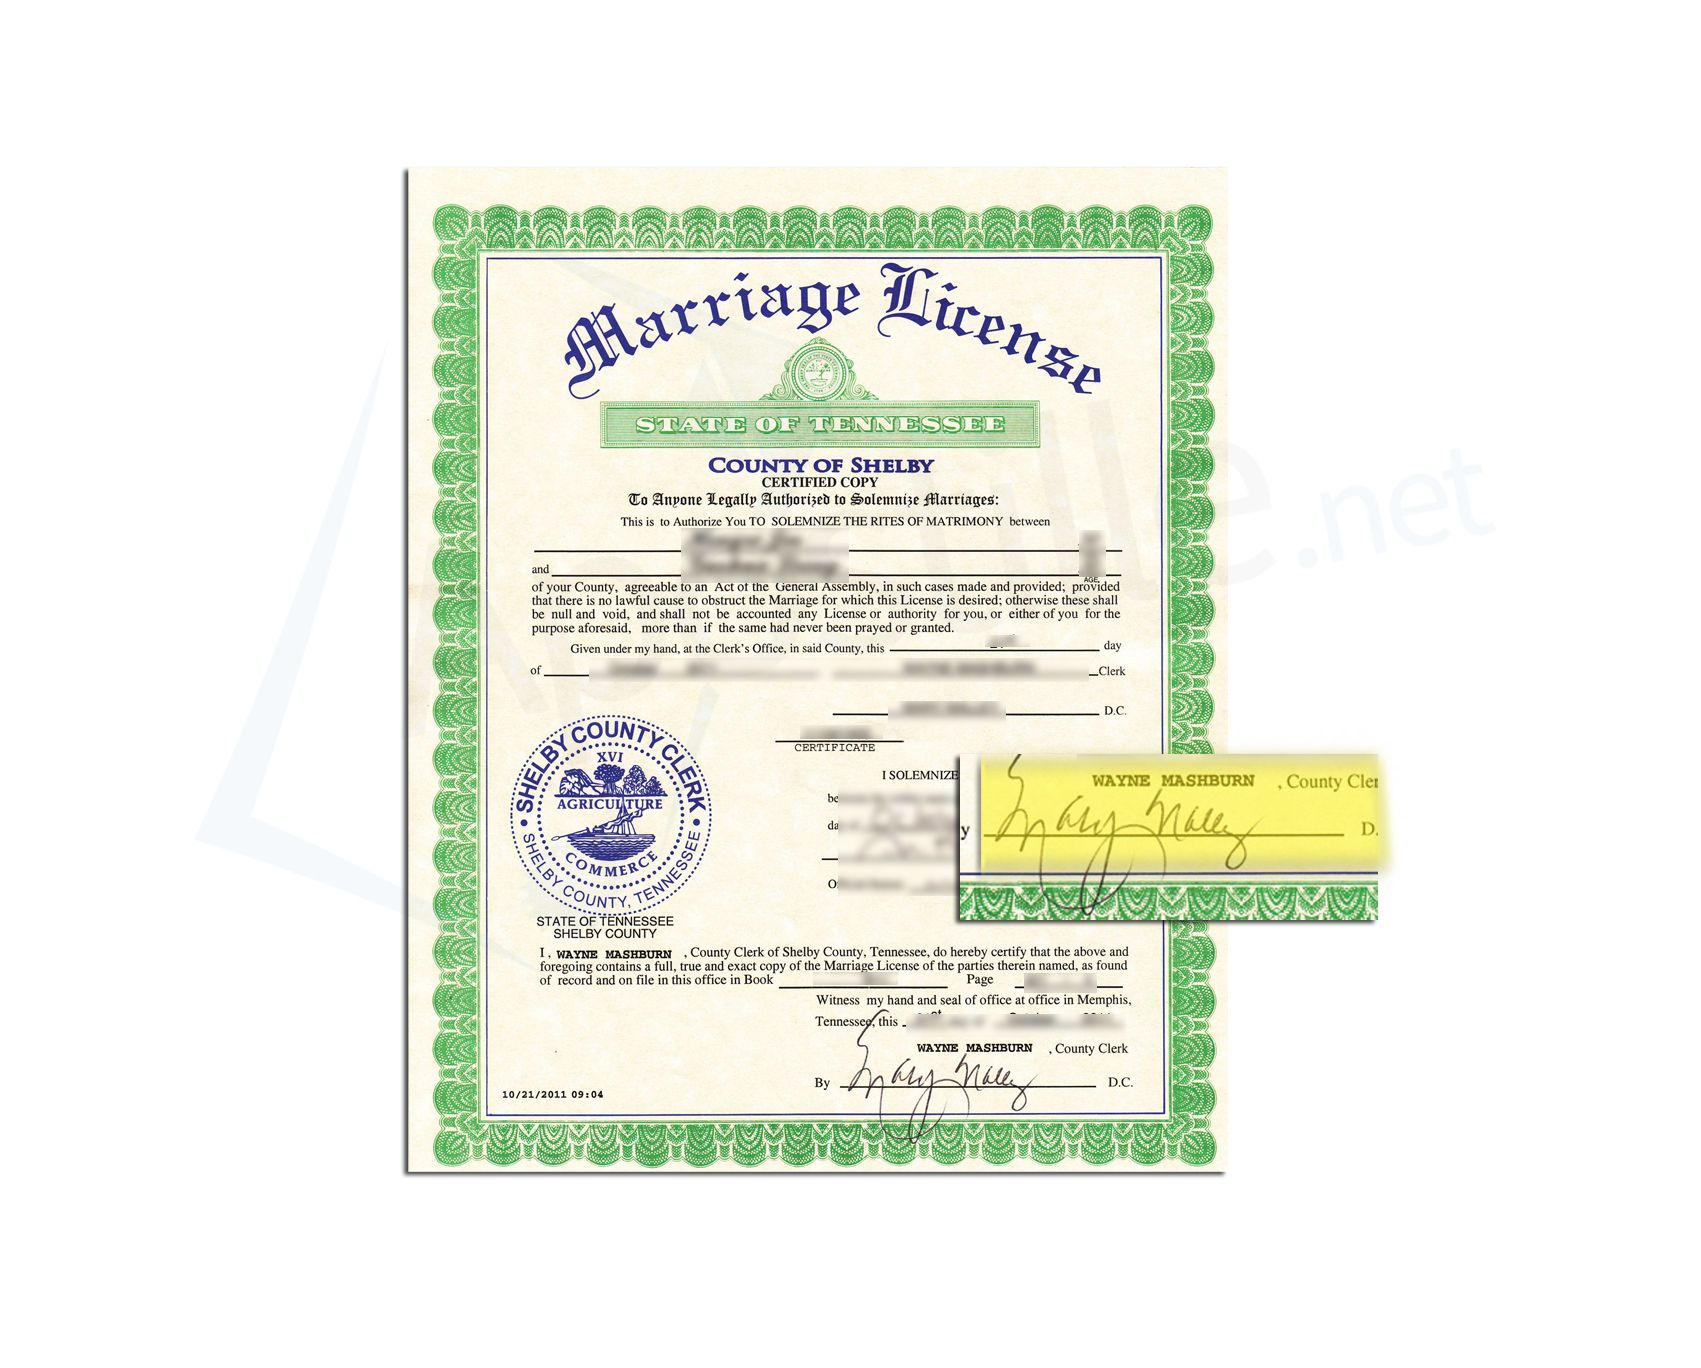 State of tennessee certificate of live birth issued by paula state of tennessee certificate of live birth issued by paula taylor state registrar state of tennessee sample apostille pinterest 1betcityfo Image collections